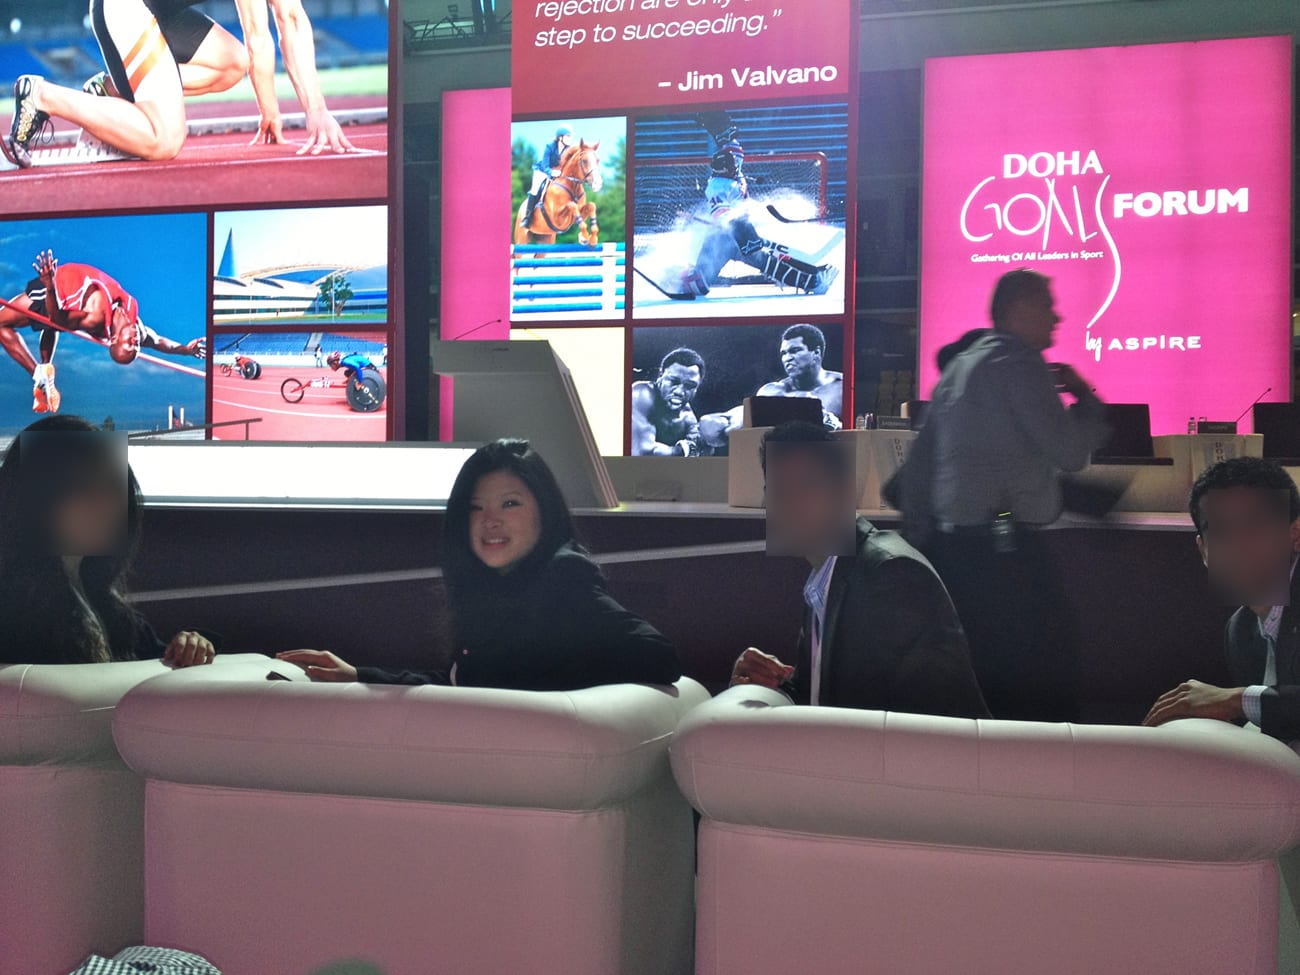 Discovering Doha, Qatar | Things to Do & See in 2 Days.